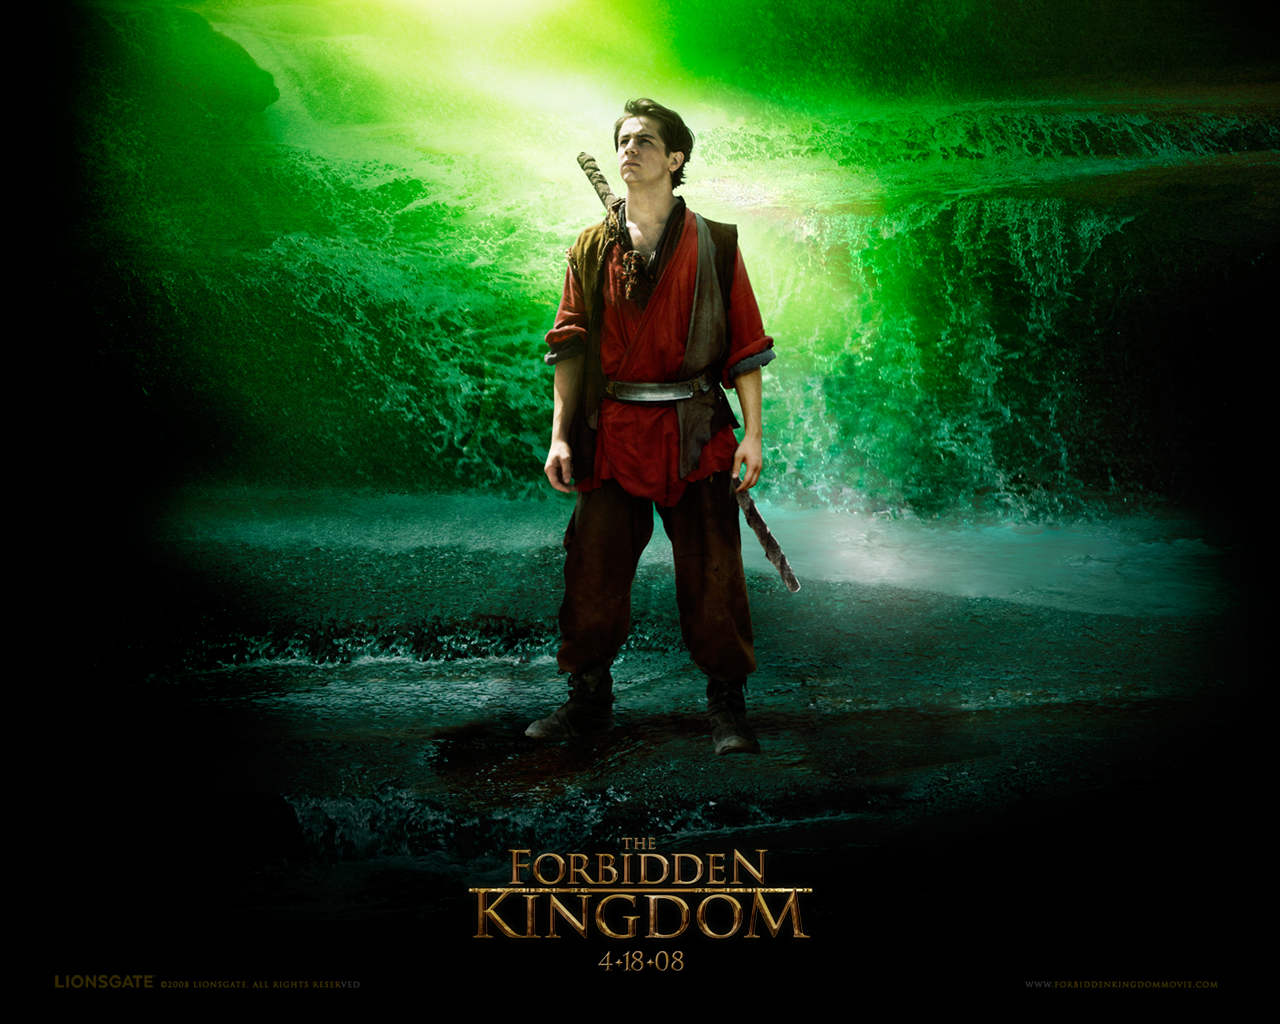 The Forbidden Kingdom HQ Movie Wallpapers | The Forbidden ... |The Forbidden Kingdom Wallpaper